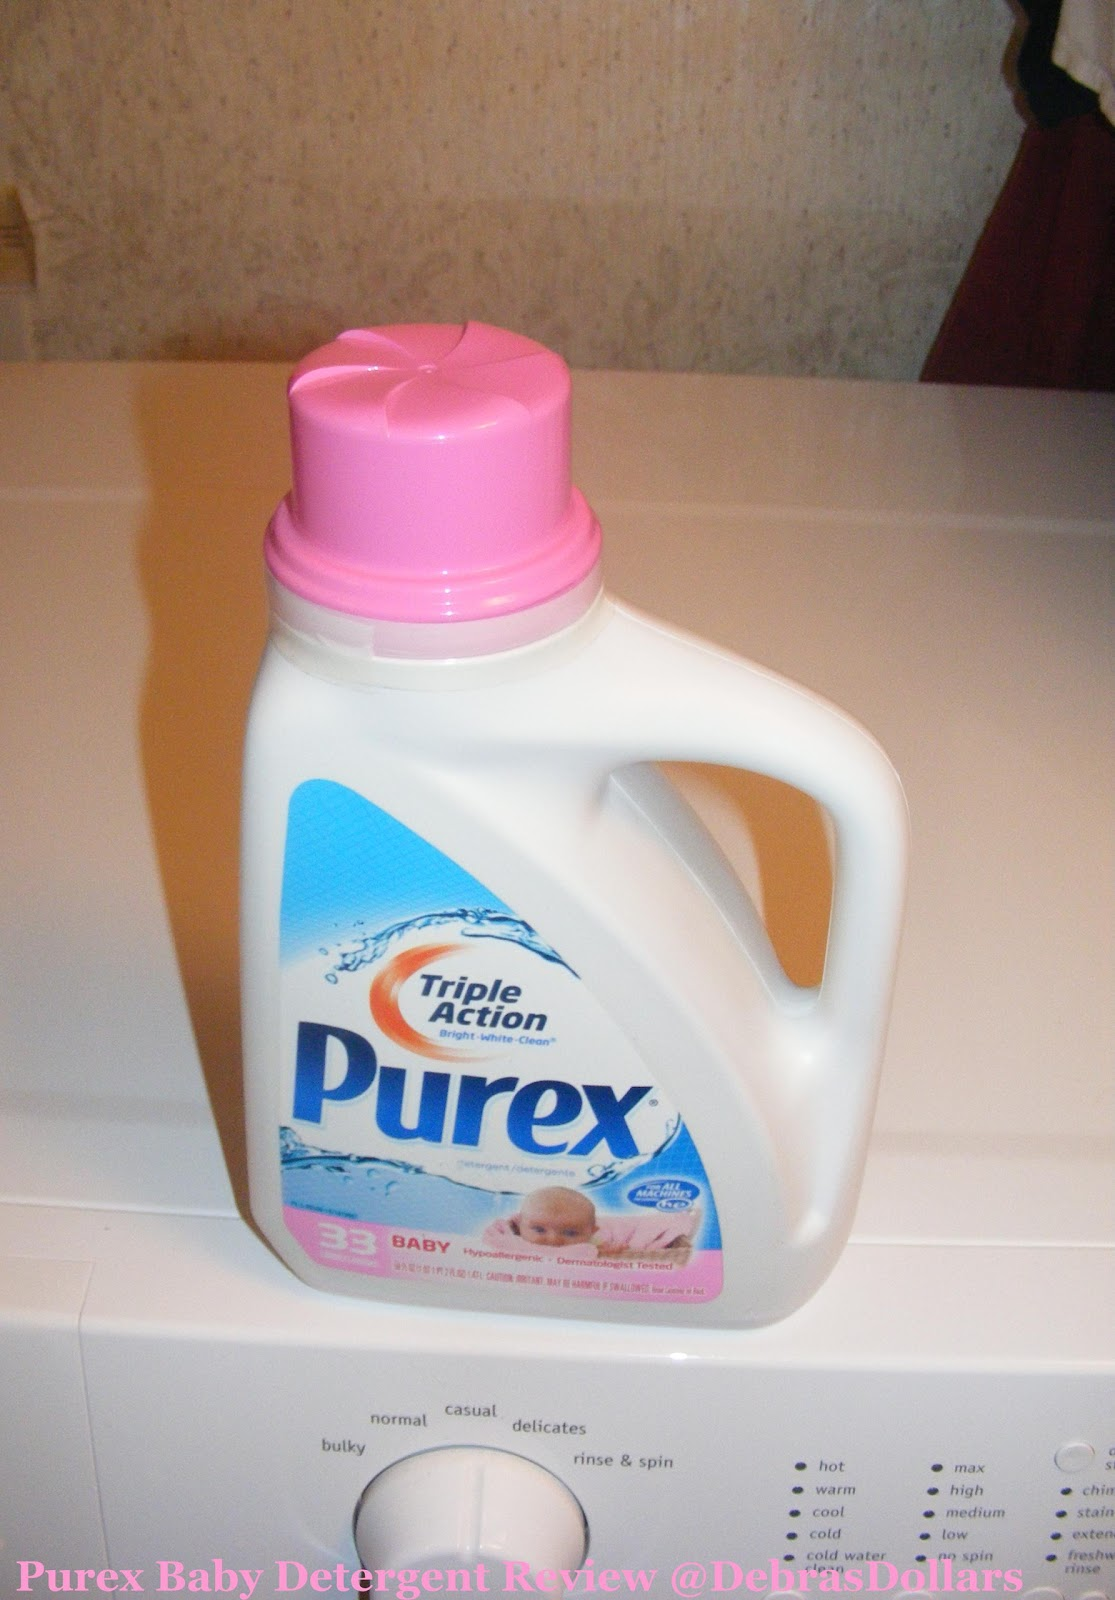 image relating to Purex Printable Coupons identify Discount codes for purex youngster detergent - Organic stability discount codes